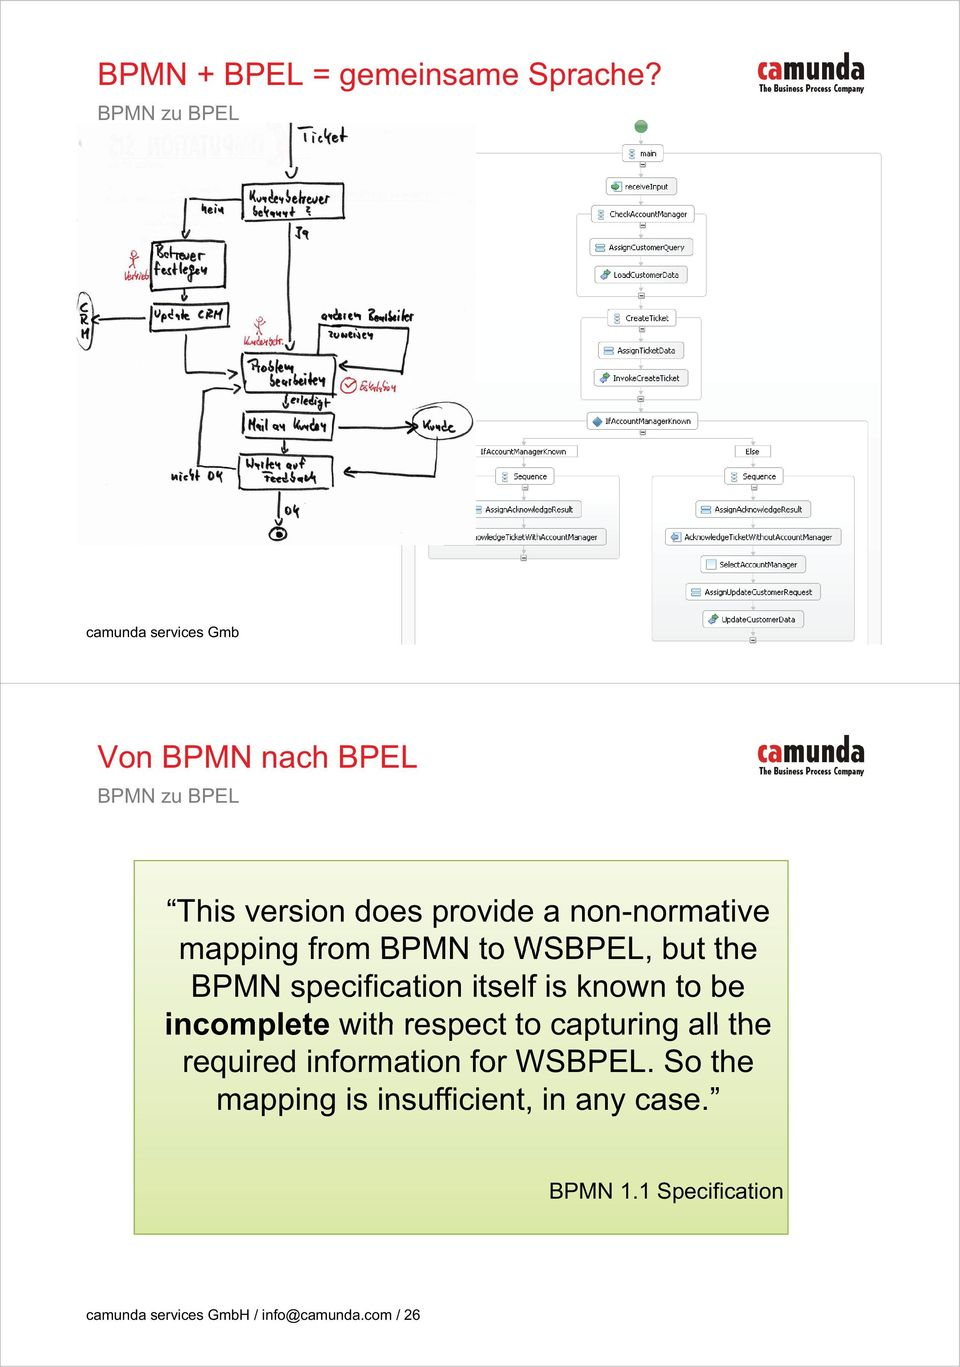 WSBPEL, but the BPMN specification itself is known to be incomplete with respect to capturing all the